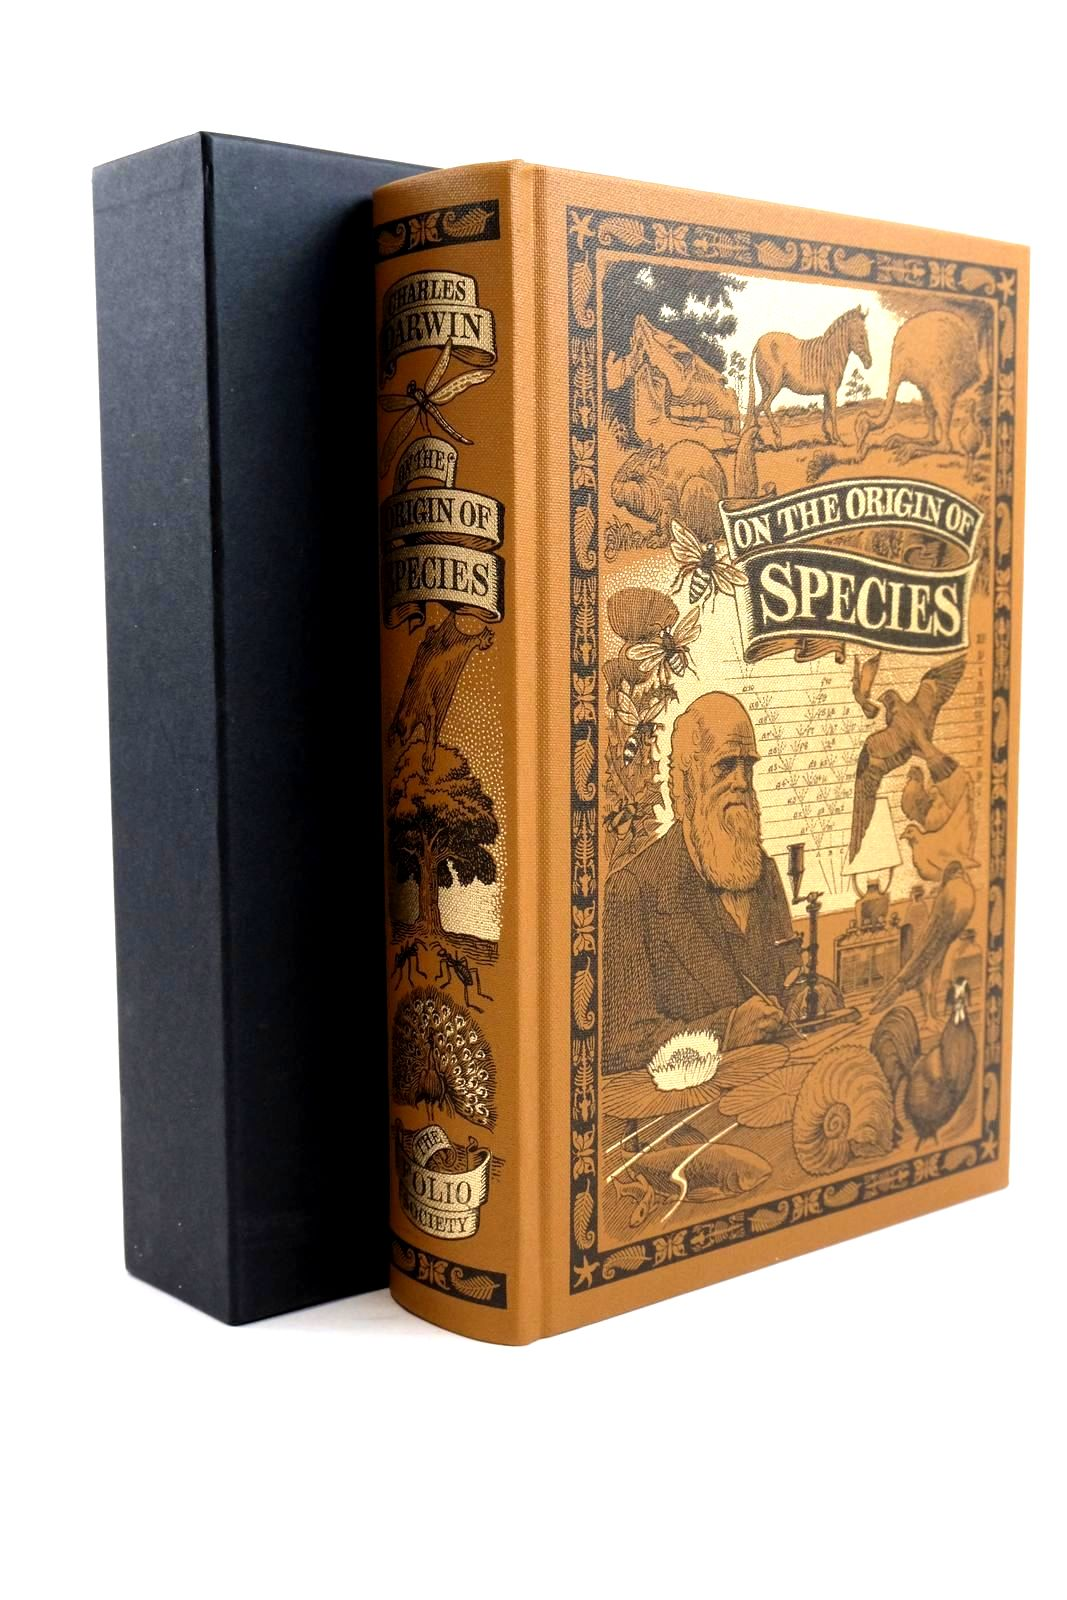 Photo of ON THE ORIGIN OF SPECIES BY MEANS OF NATURAL SELECTION written by Darwin, Charles Keynes, Richard published by Folio Society (STOCK CODE: 1320745)  for sale by Stella & Rose's Books